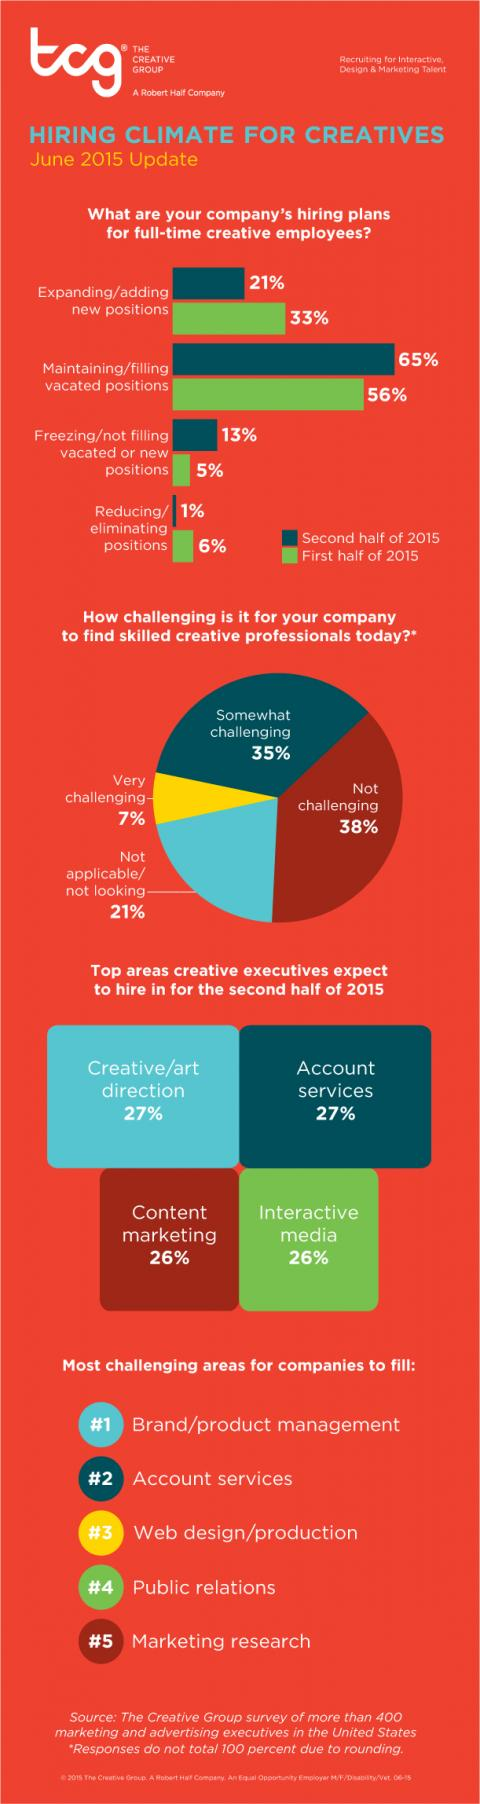 An infographic from The Creative Group shares what the hiring climate looks like for creative professionals in the second half of 2015.